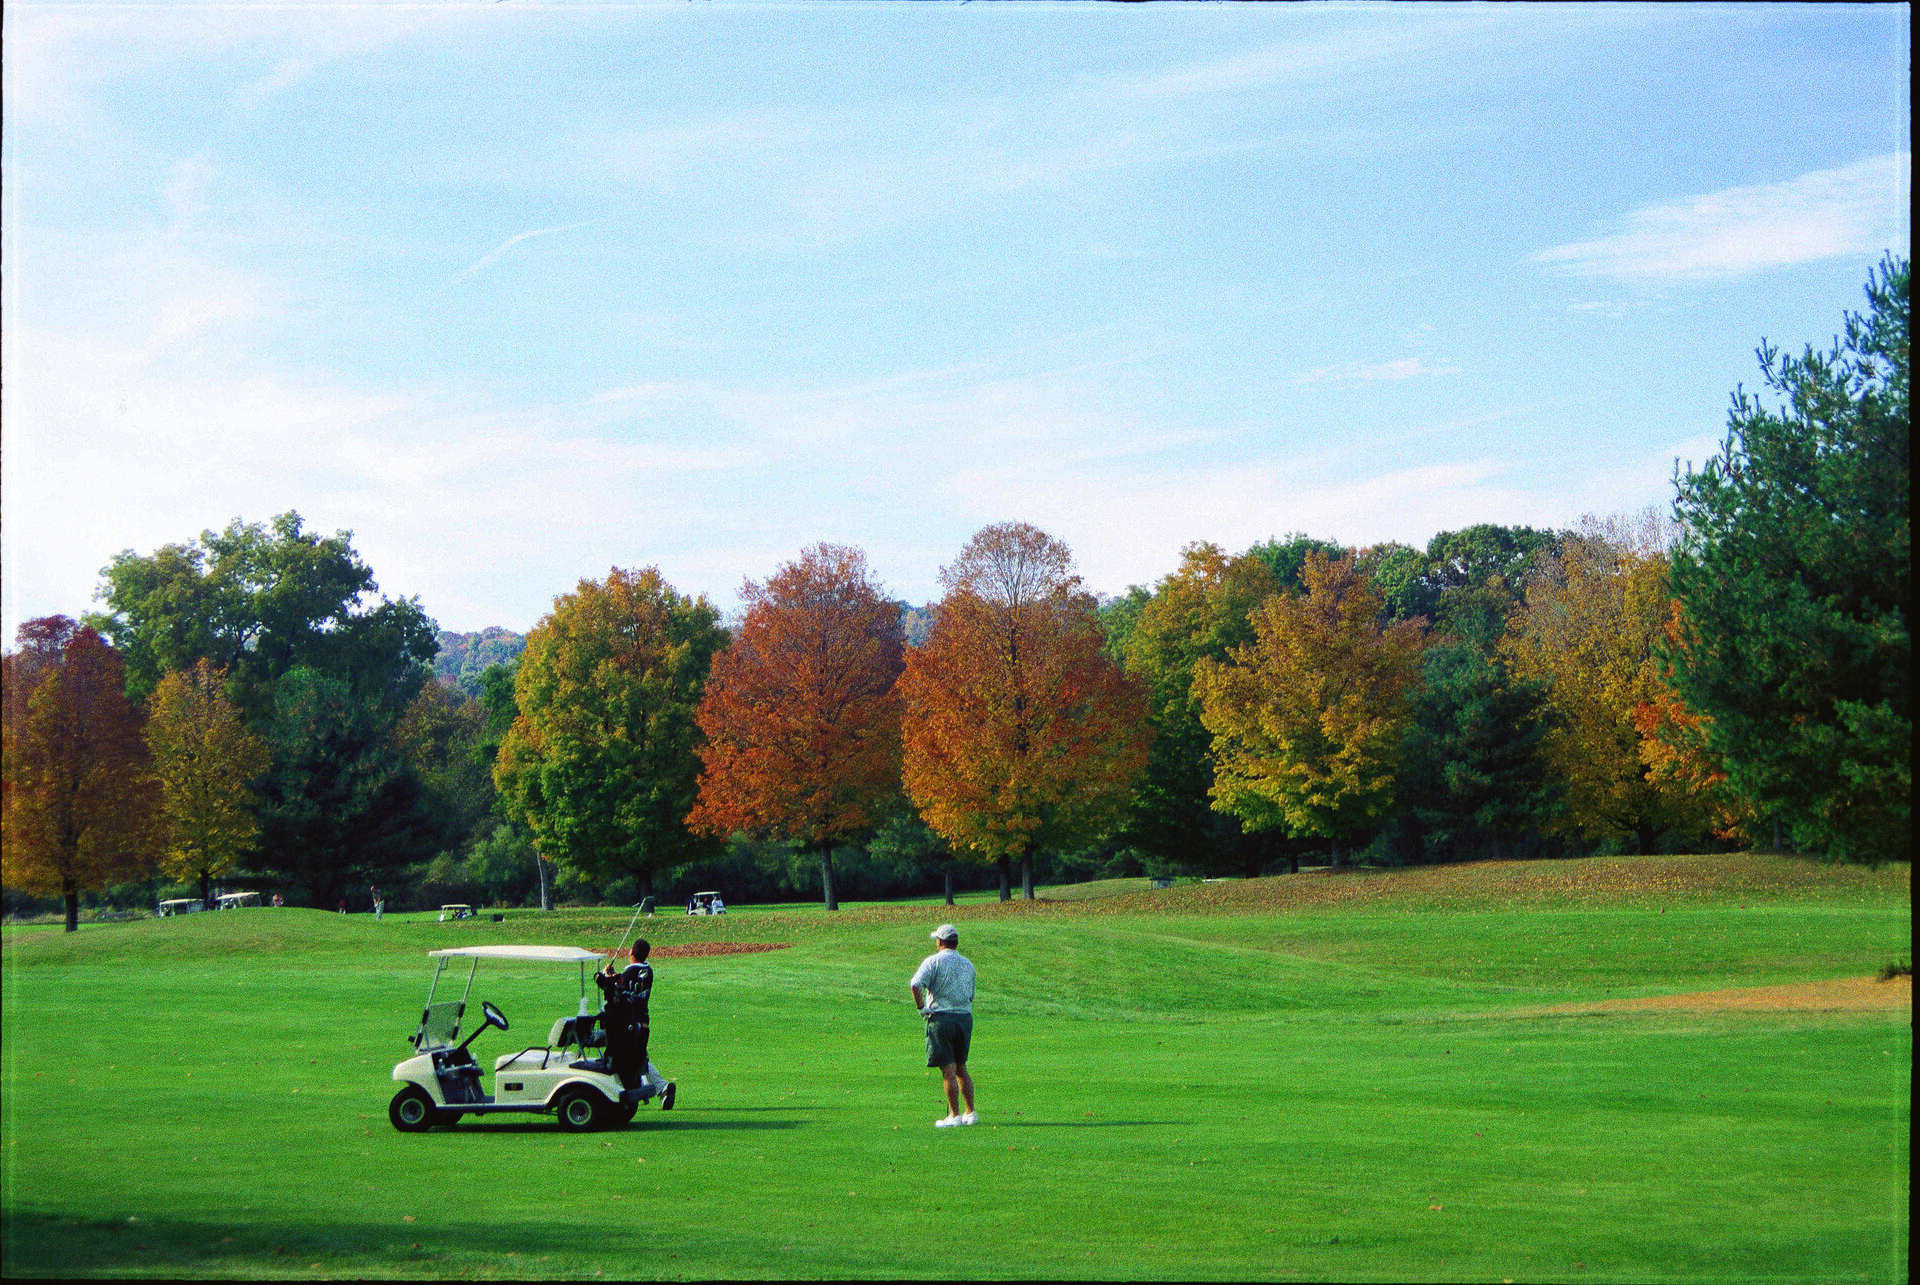 Gentleman playing golf at Pomperaug Golf Club